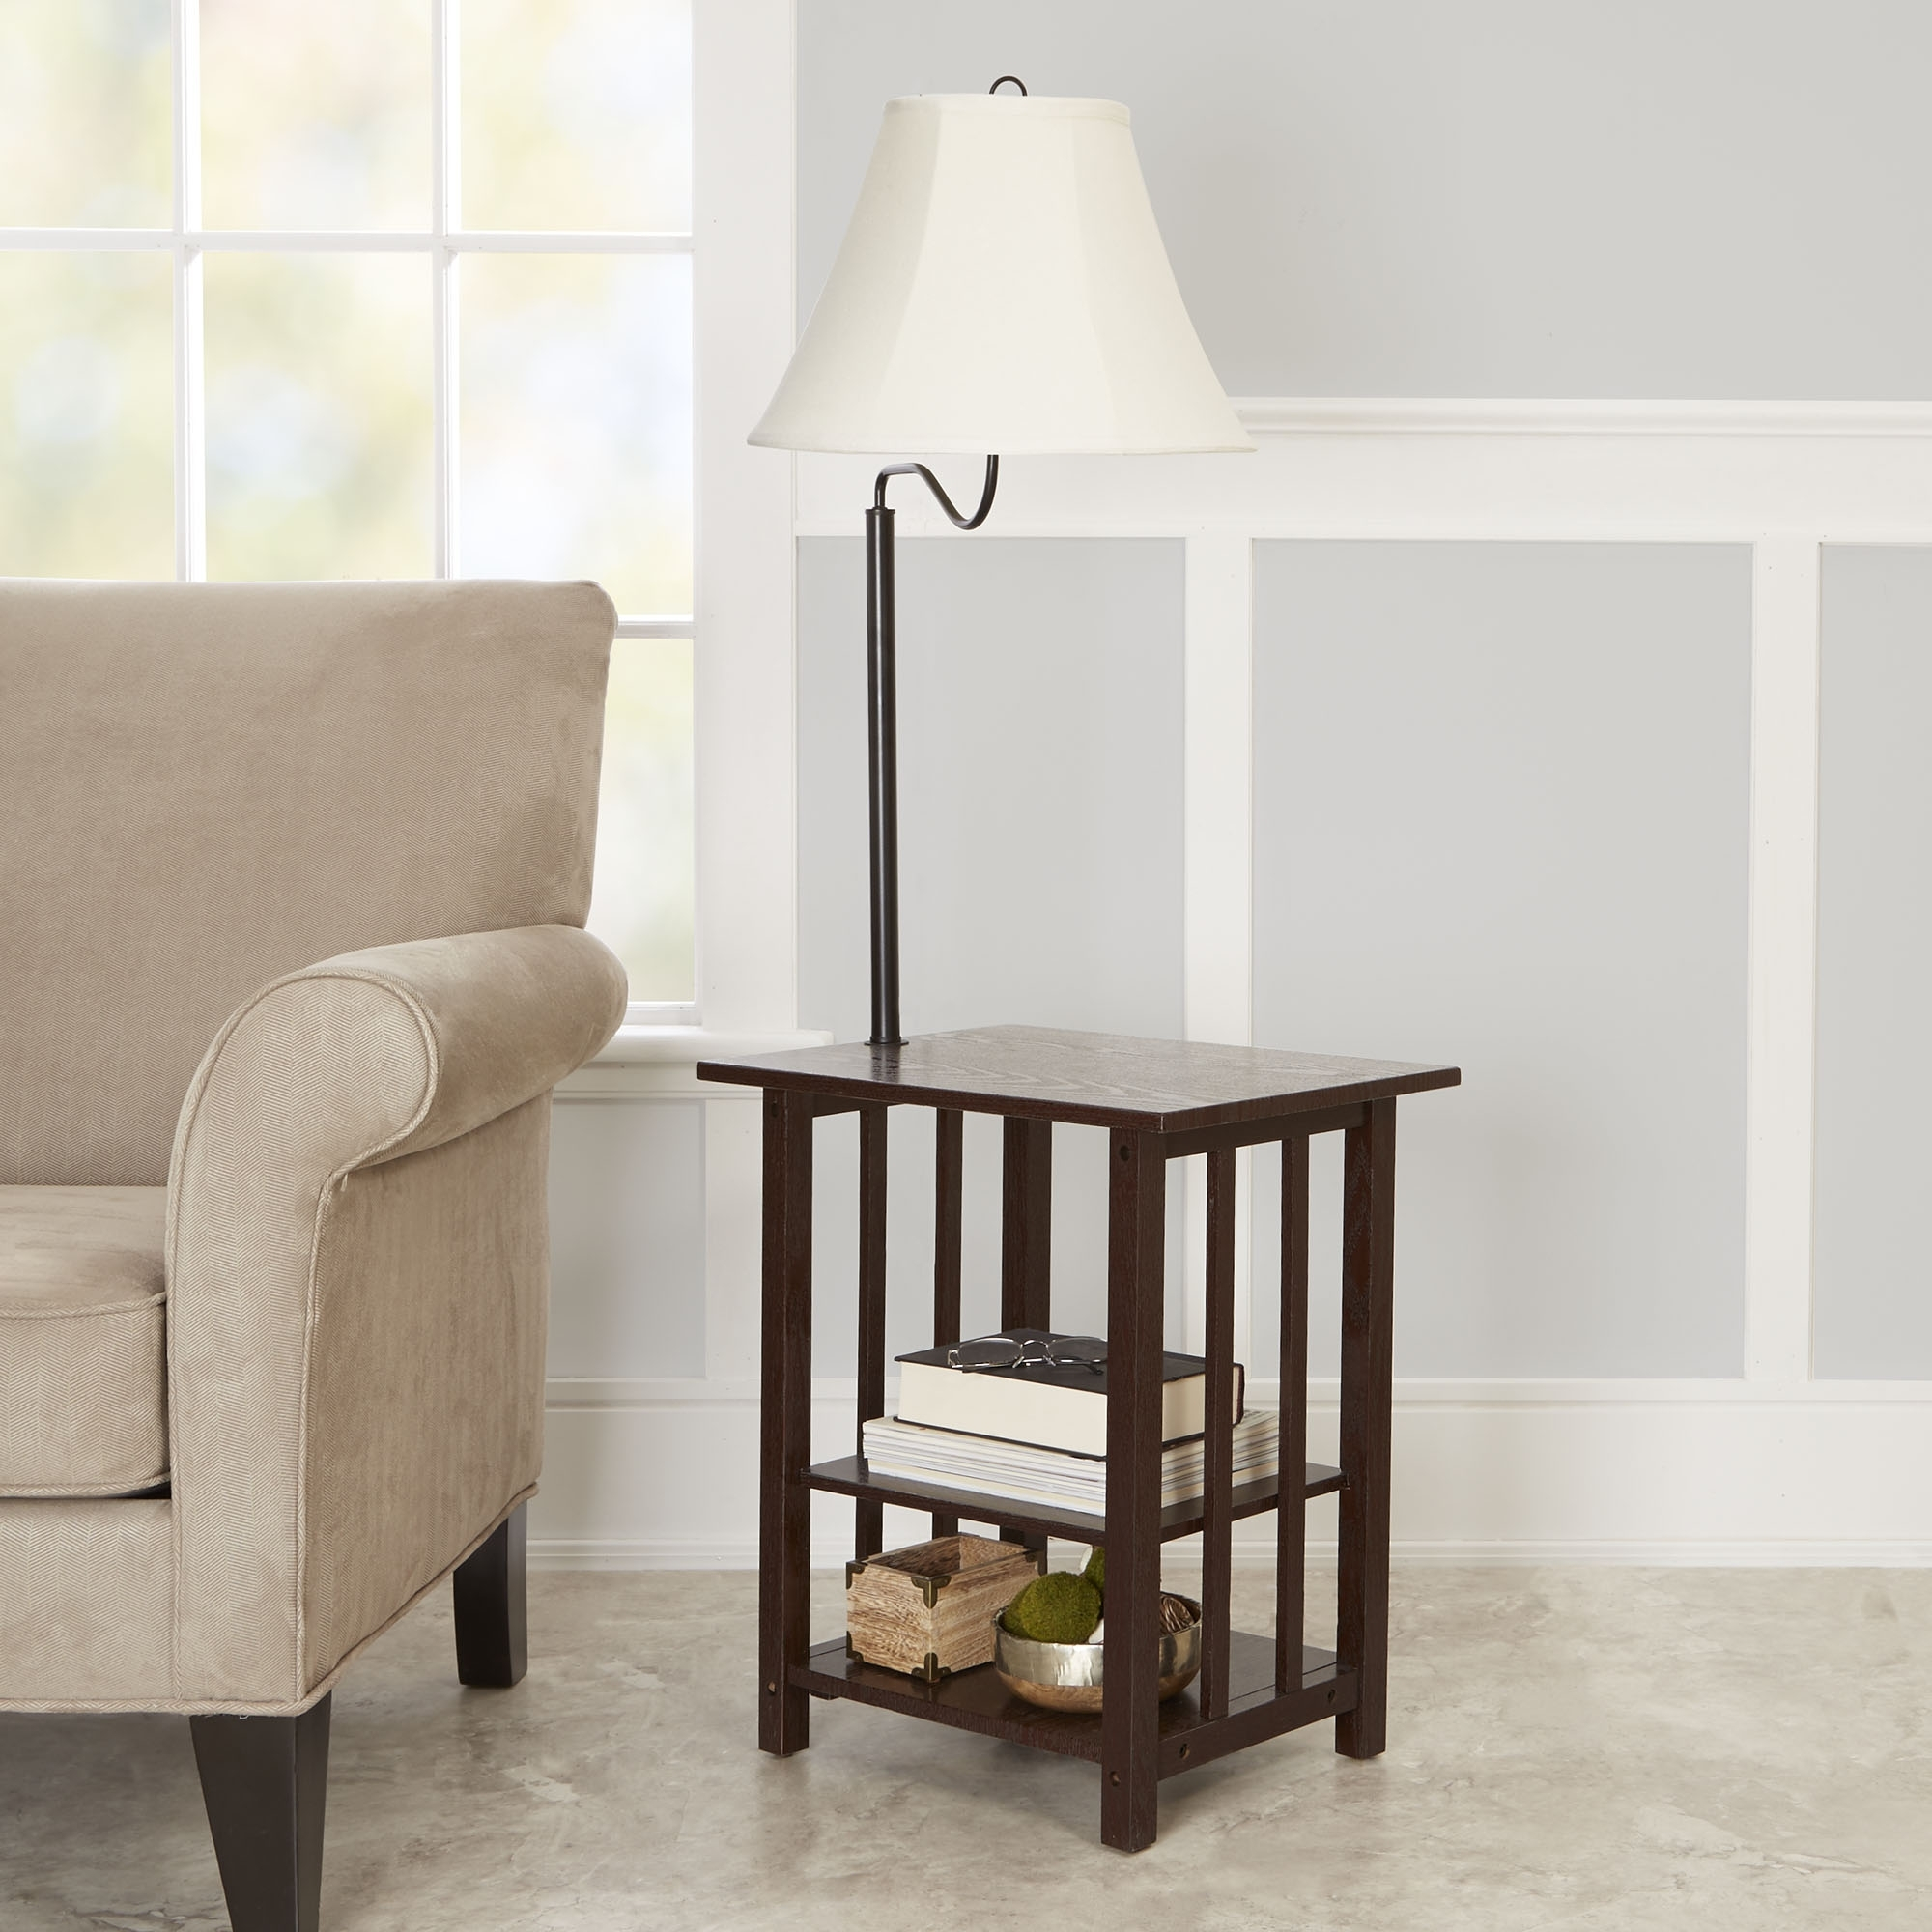 Popular Better Homes & Gardens 3 Rack End Table Floor Lamp, Espresso Finish With Regard To Walmart Living Room Table Lamps (View 11 of 15)